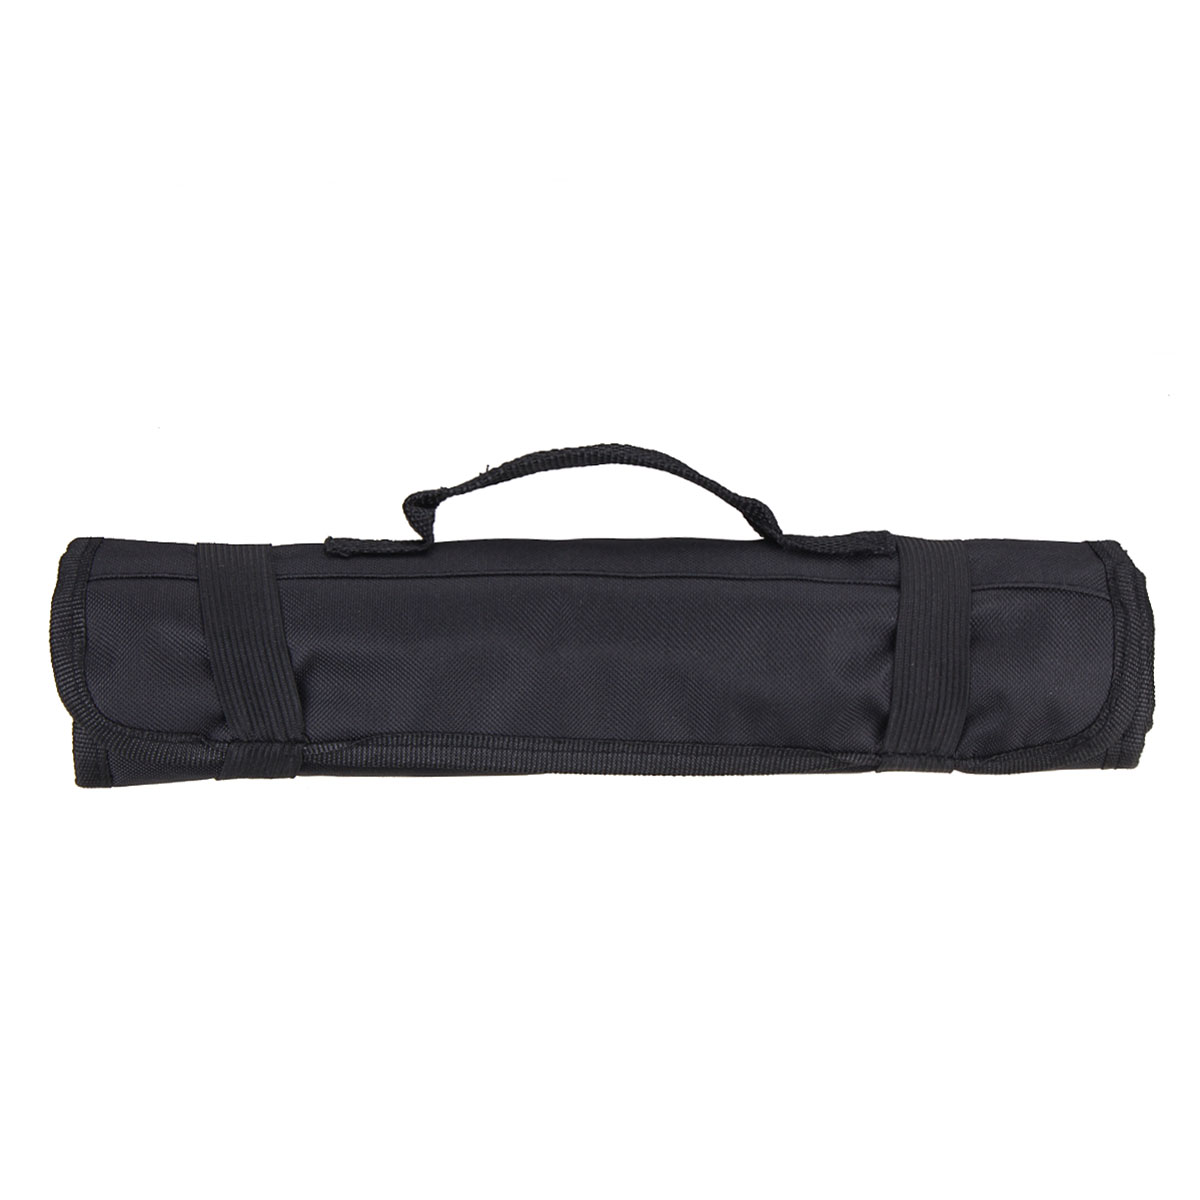 Chef Knife Bag Roll Bag Carry Case Bag Kitchen Portable Storage 10/21 Pockets